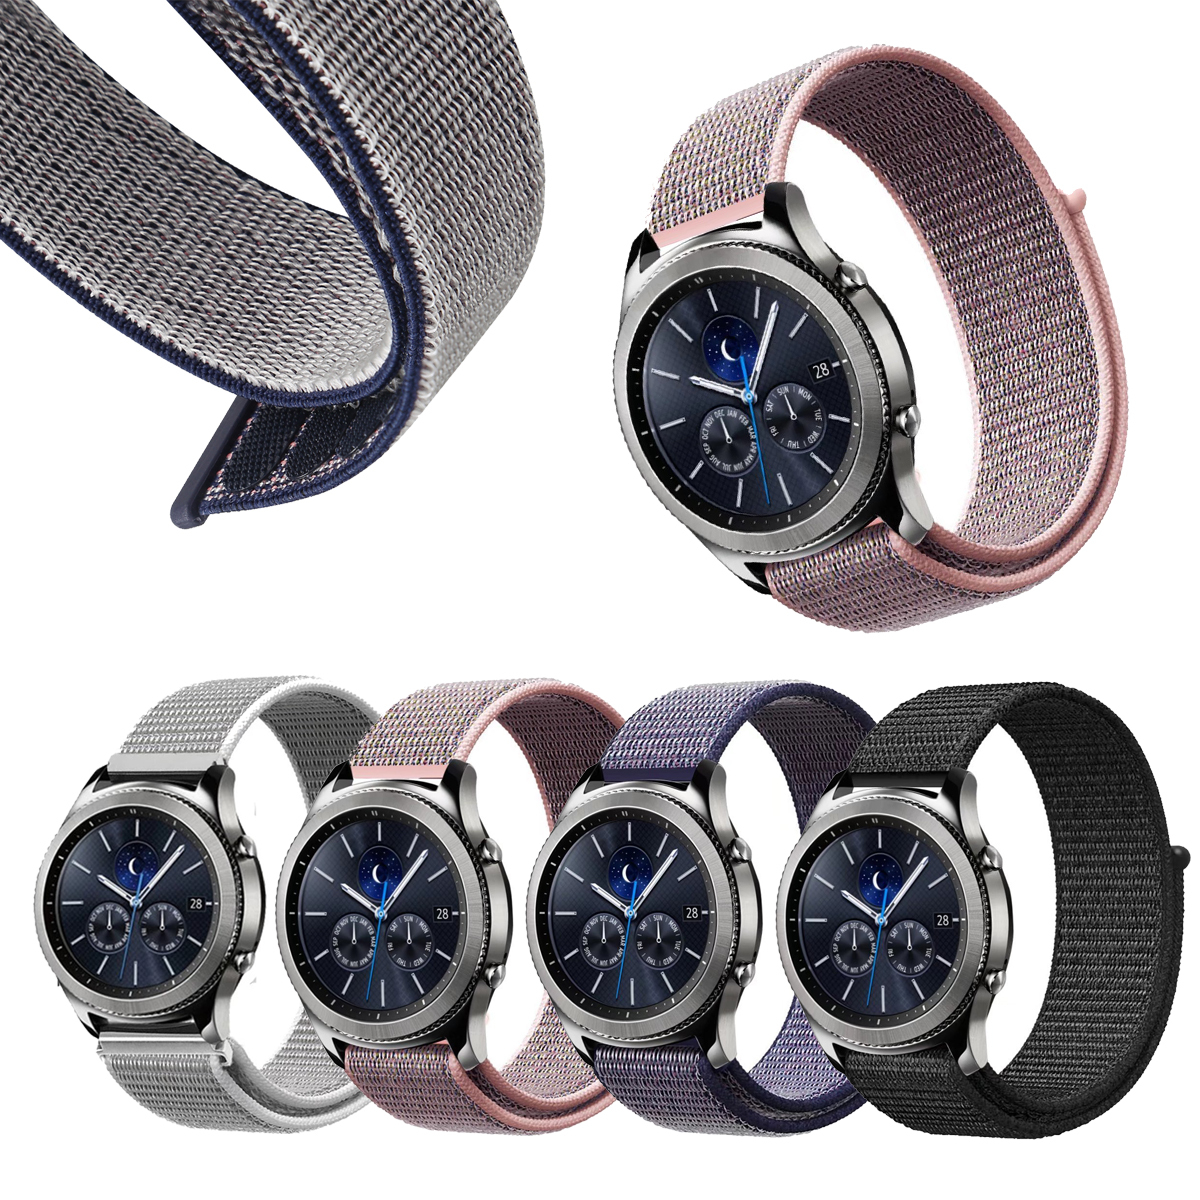 Nylon Sport For Samsung Gear S2 Watch Band Gear Sport SM-R600 / Gear S2 Classic SM-R732 & SM-R735 Smart strap аксессуар ремешок samsung et srr72mlegru для gear s2 gear s2 sport black blue